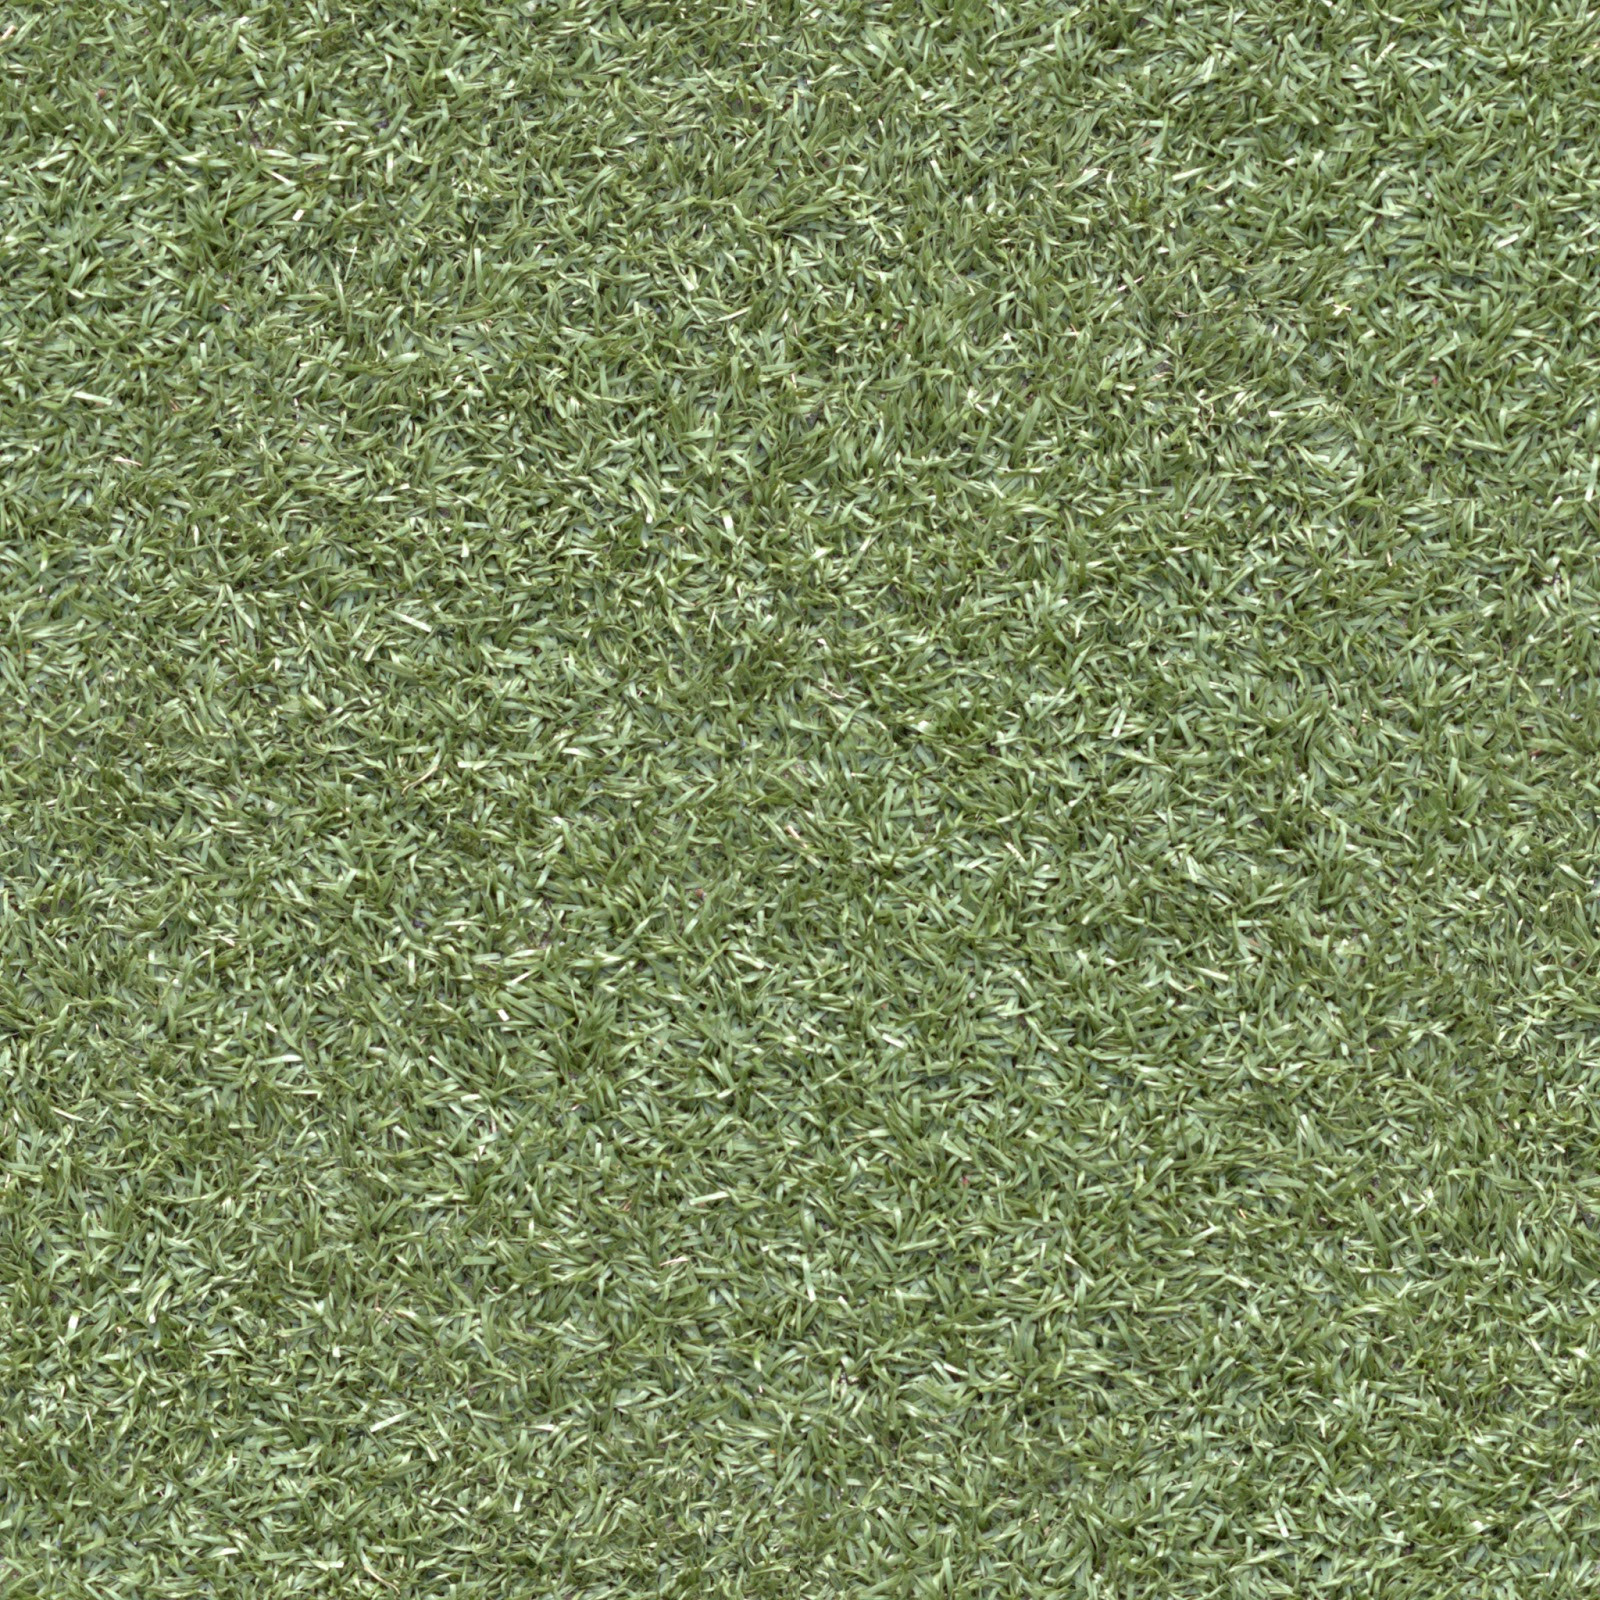 (GRASS 5) Plastic turf lawn green ground field seamless texture 2048x2048